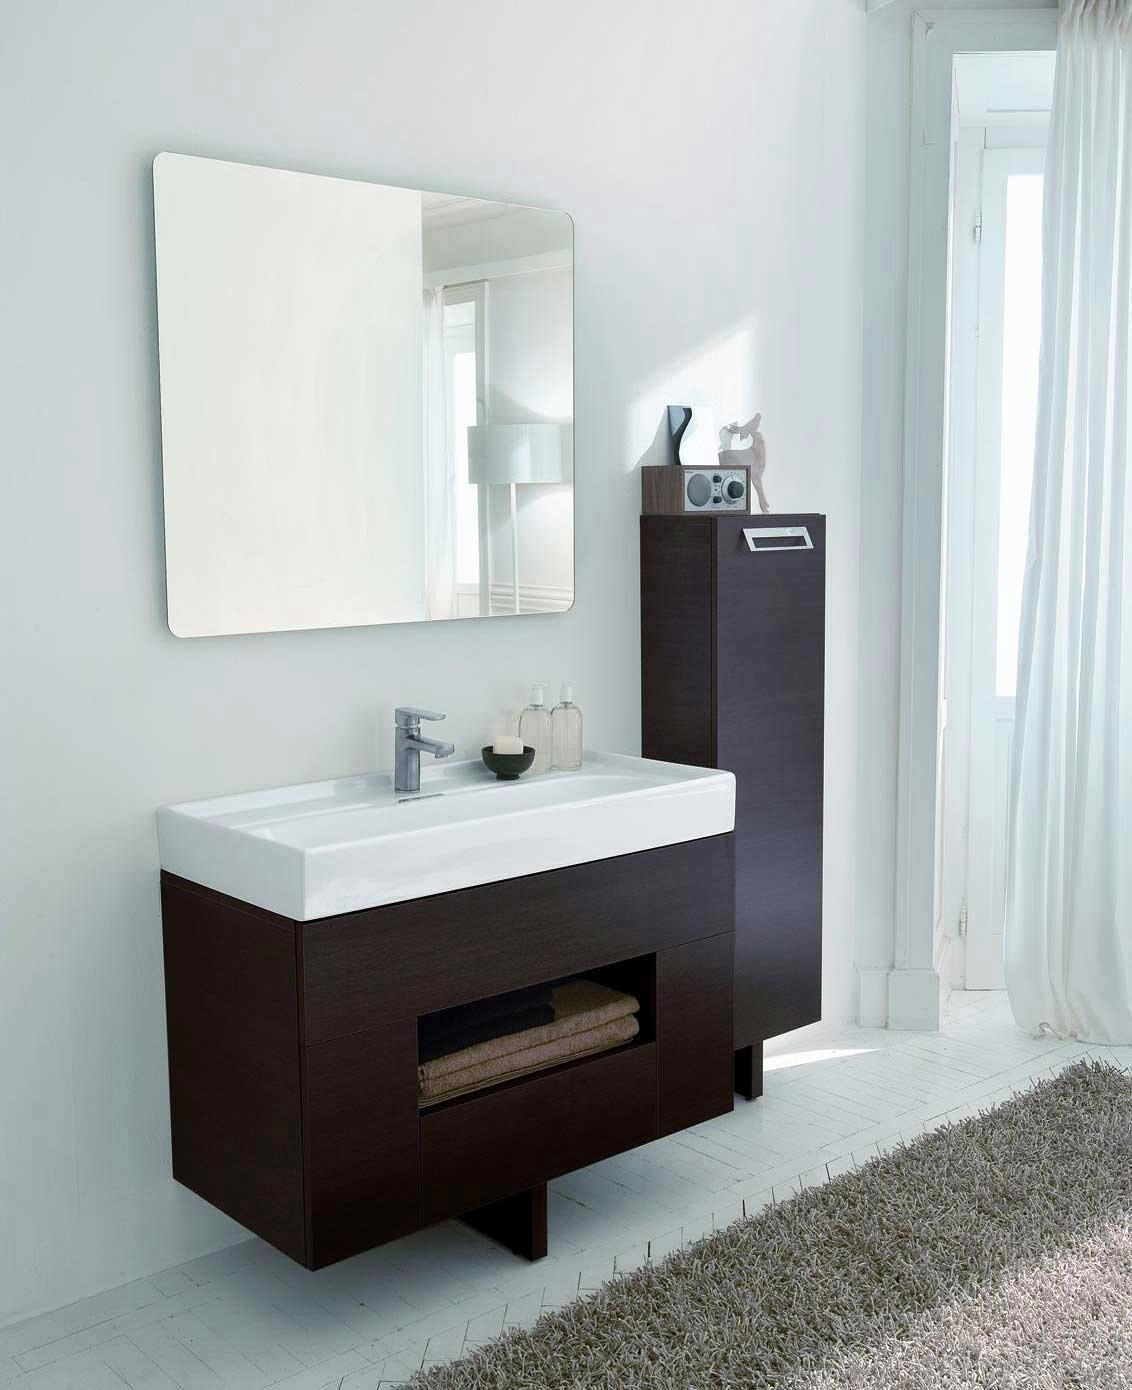 LaToscana Open Bathroom Vanity with Ceramic Sink